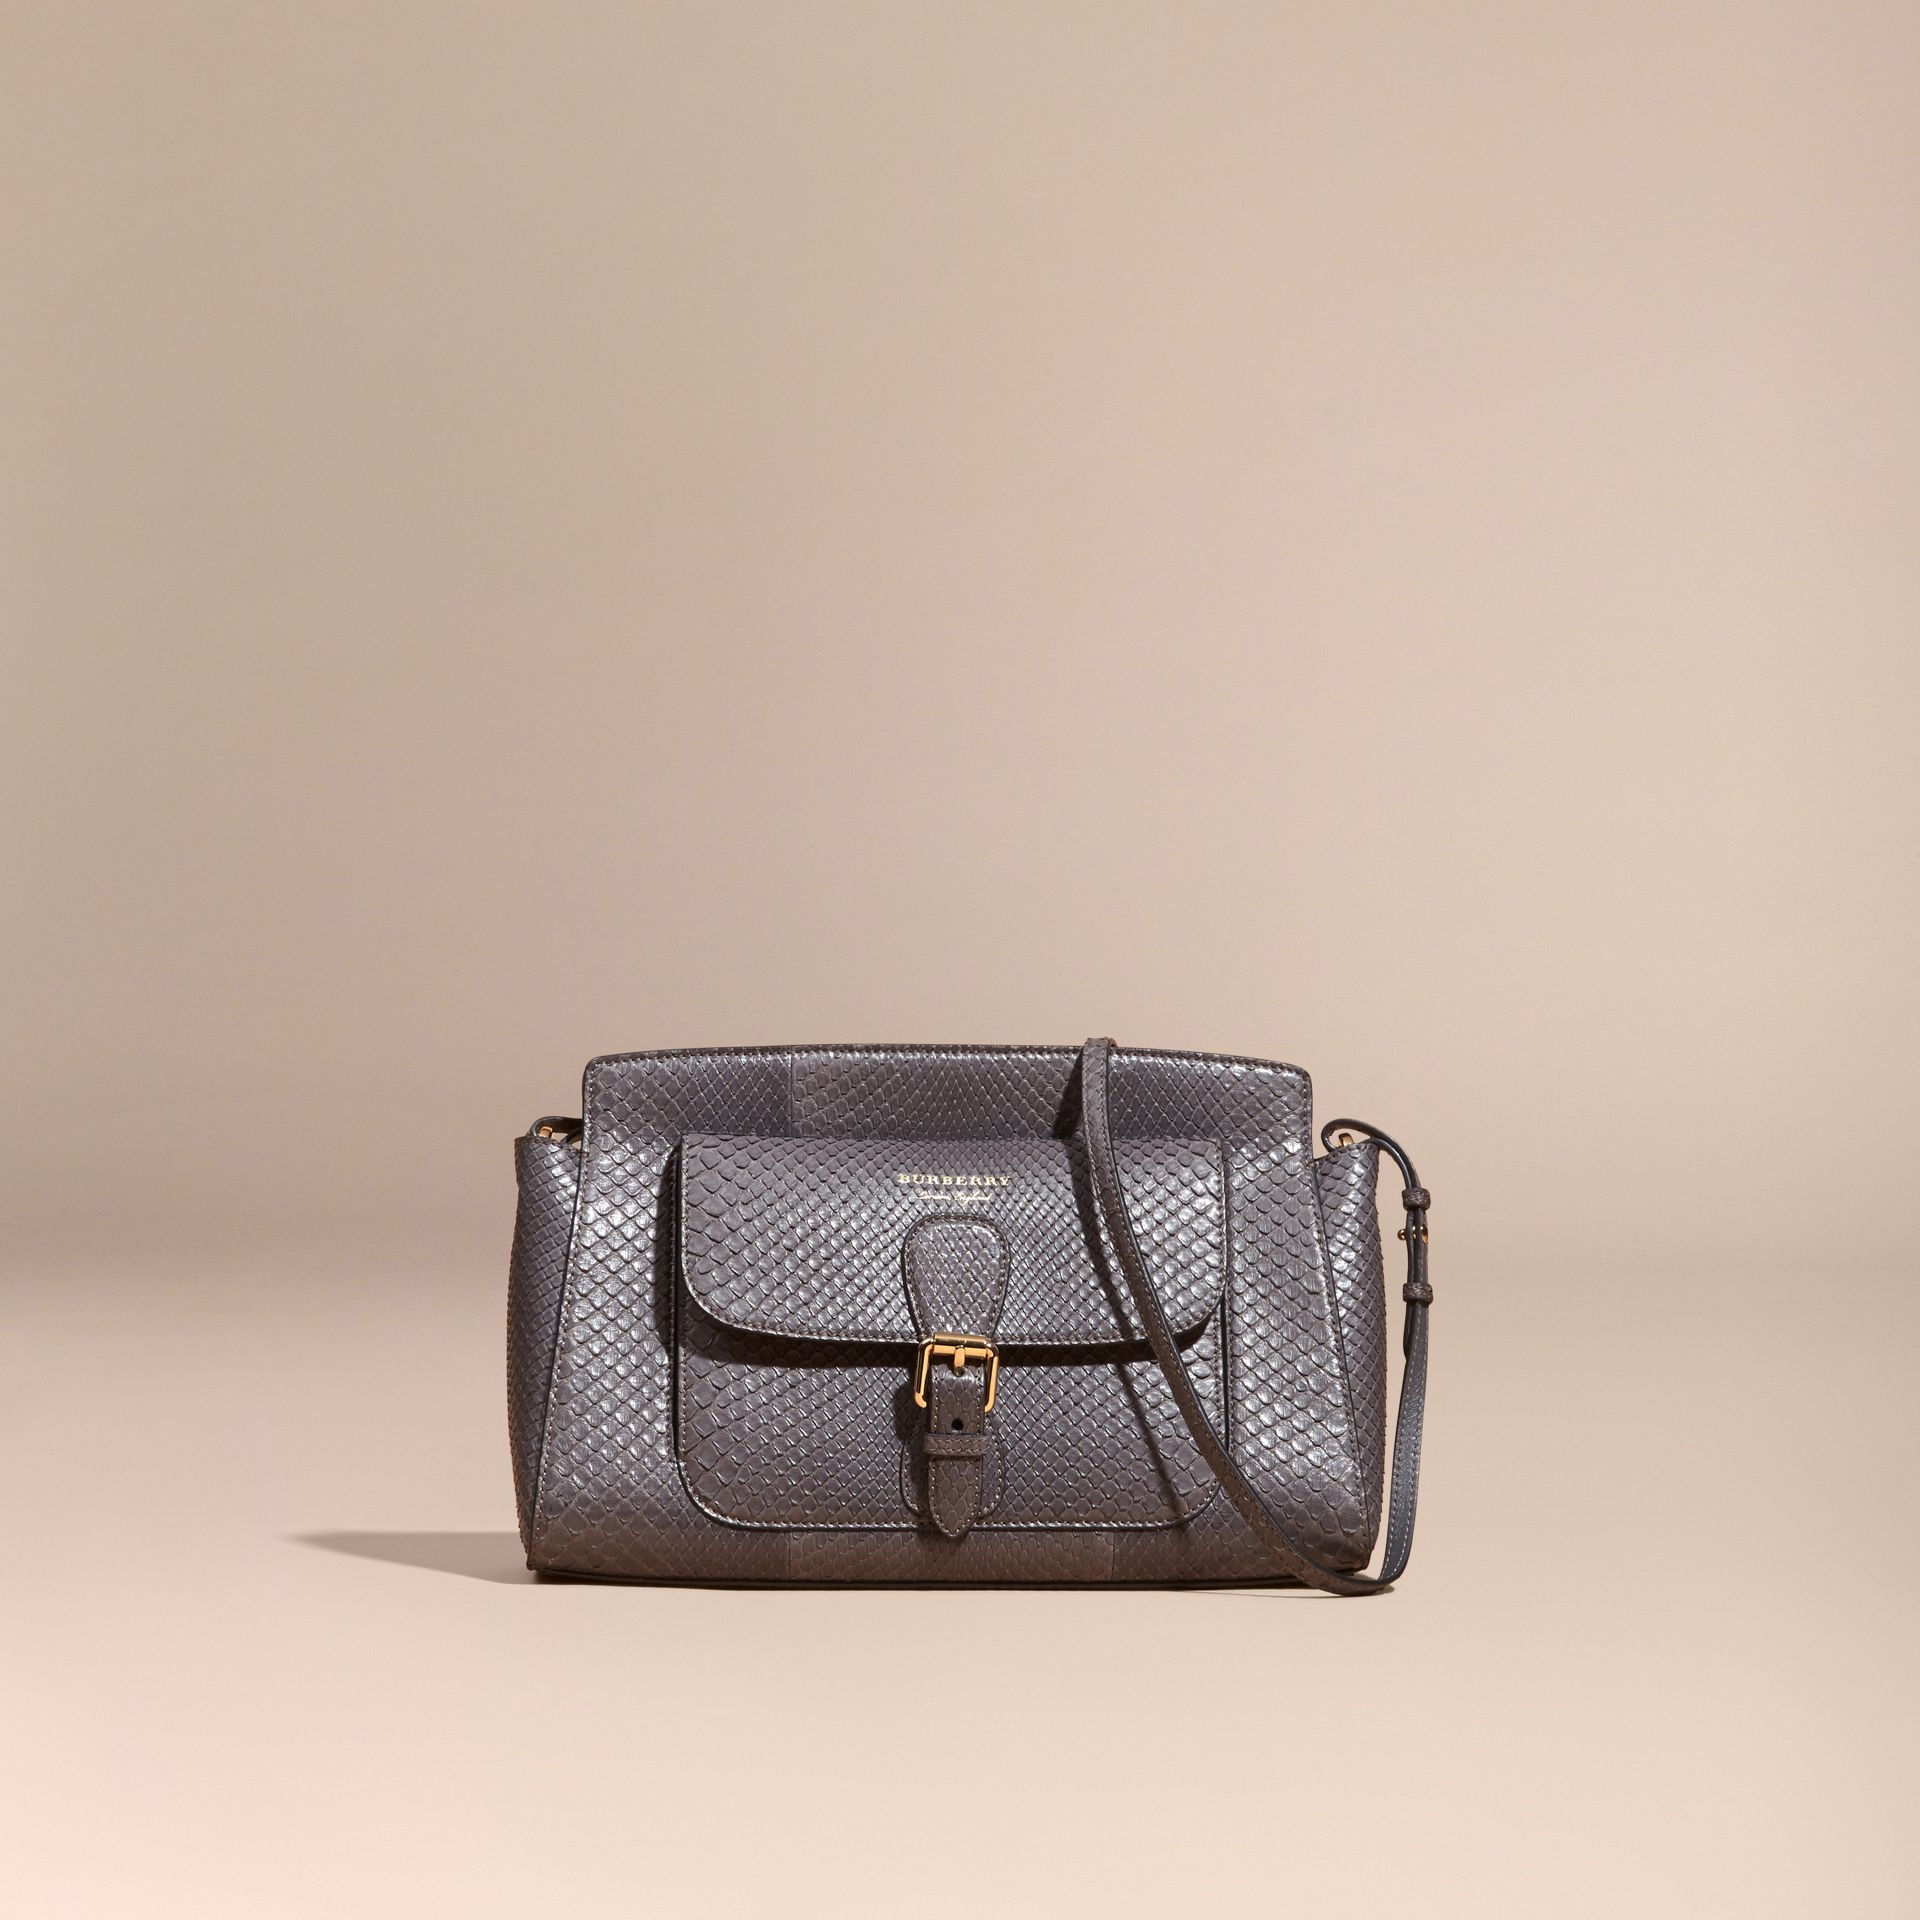 Sepia grey The Saddle Clutch in Python - gallery image 9